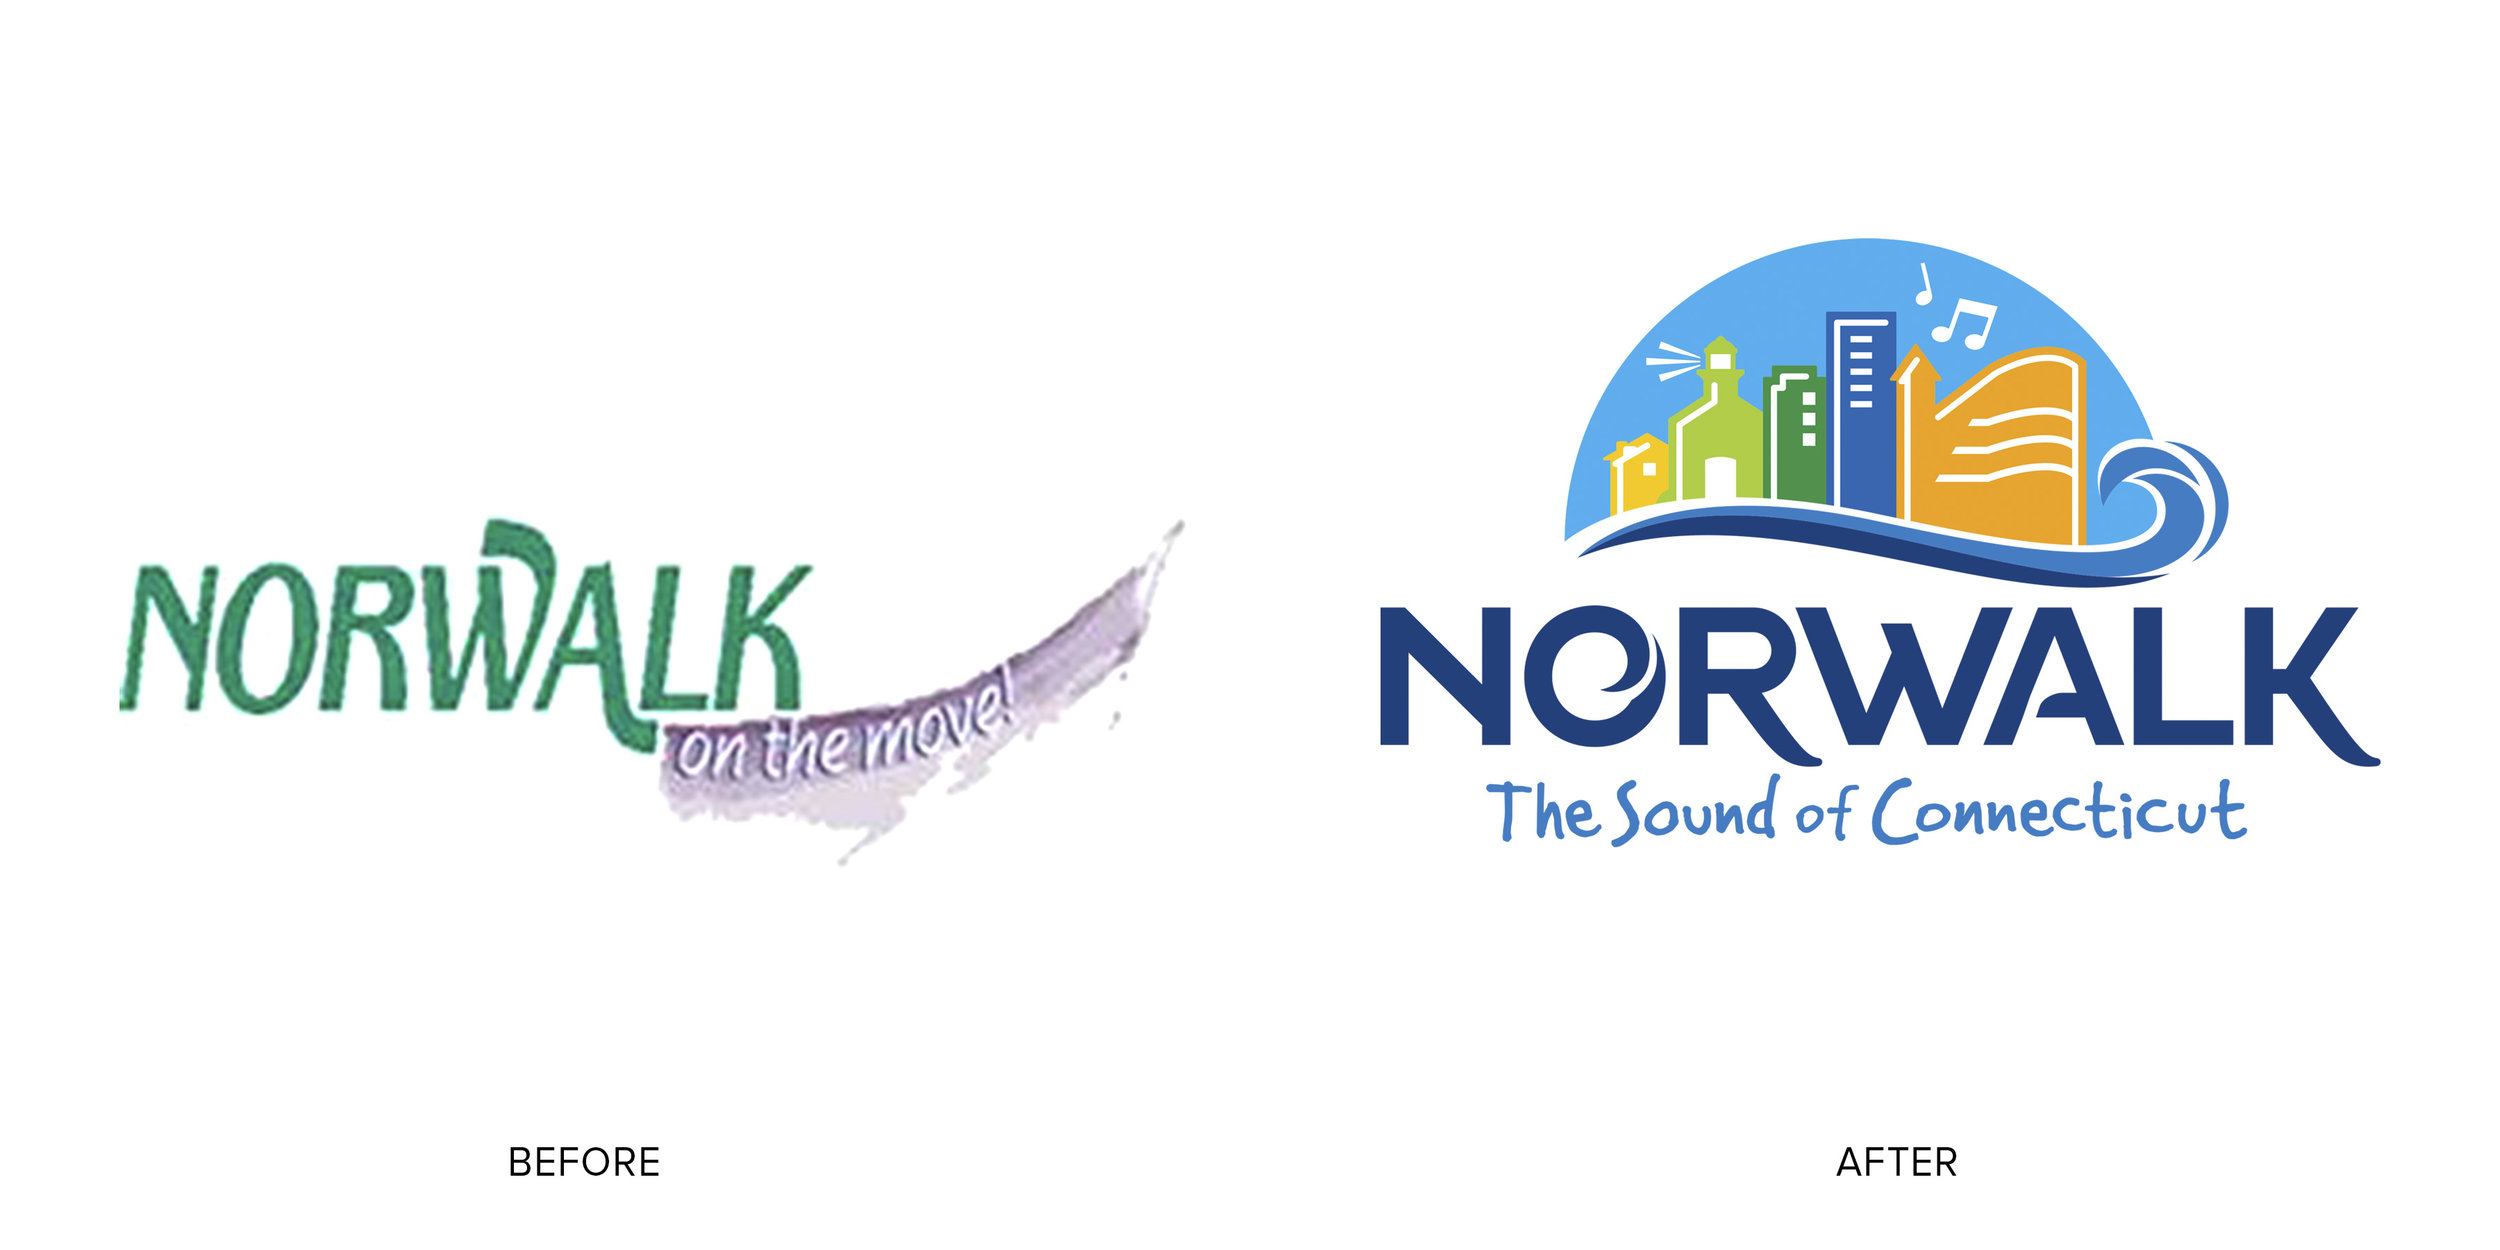 Norwalk_BeforeAfter.jpg